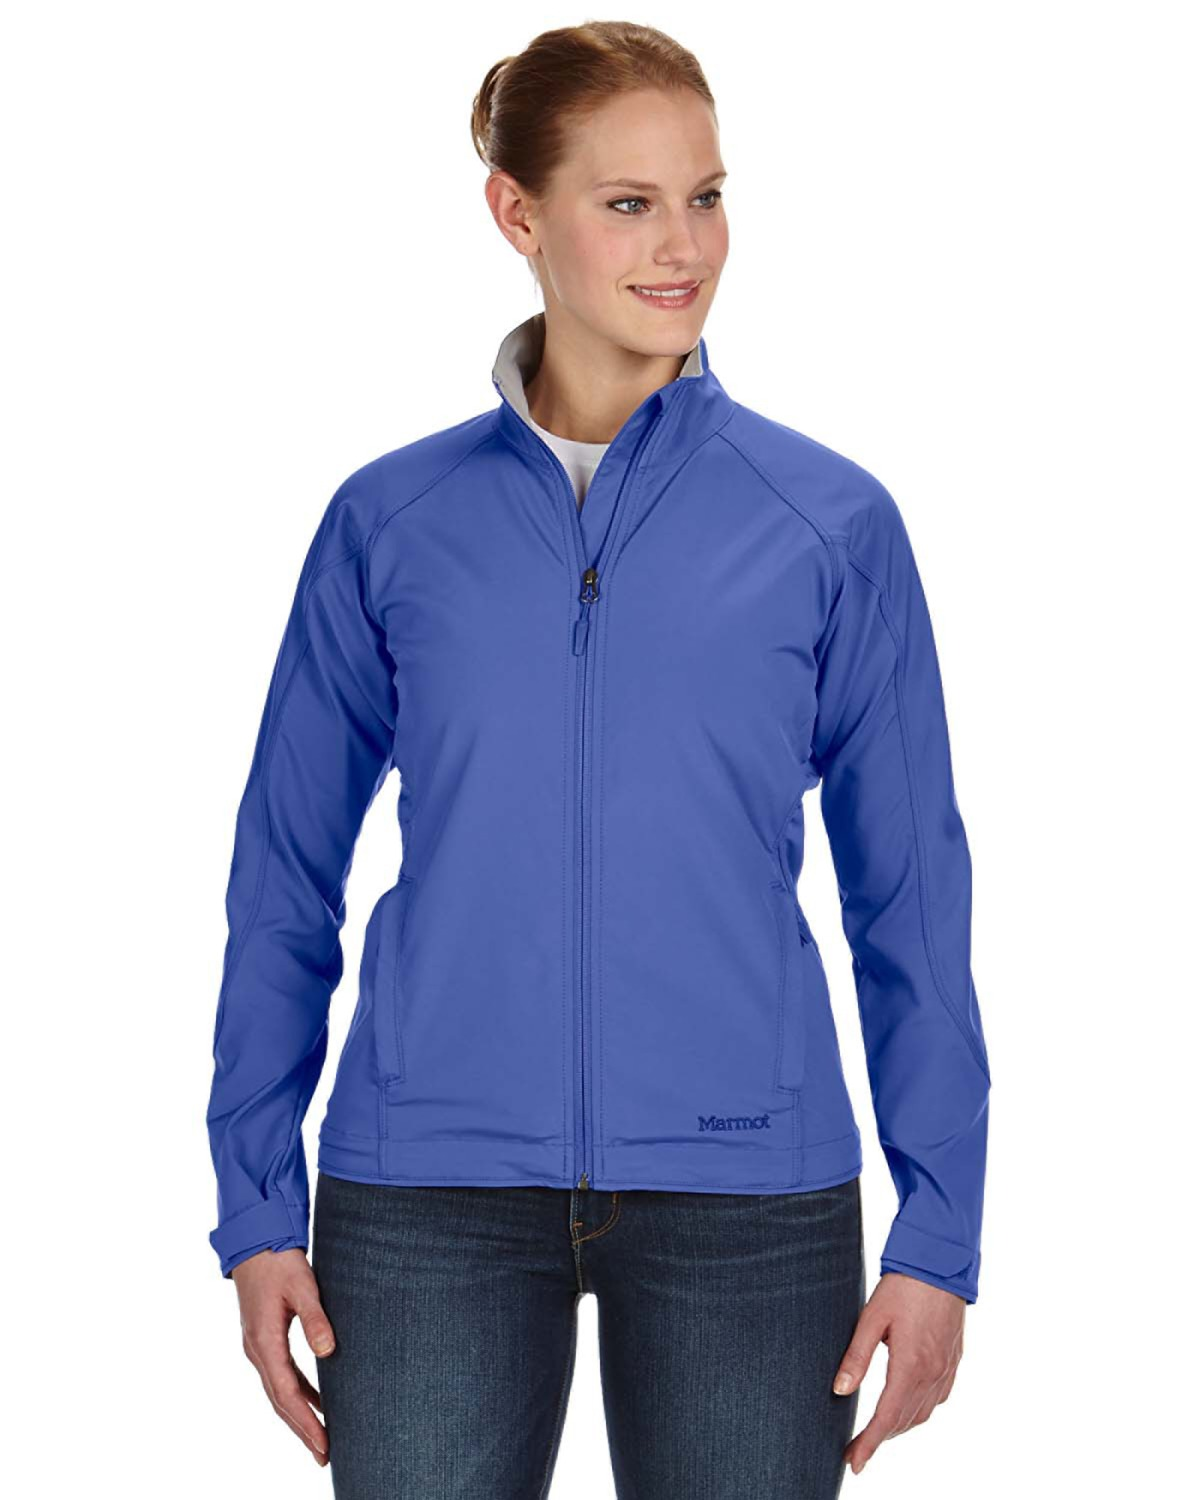 Marmot - 8587, Ladies' Levity Jacket, Embroidery, Screen Printing - Logo Masters International